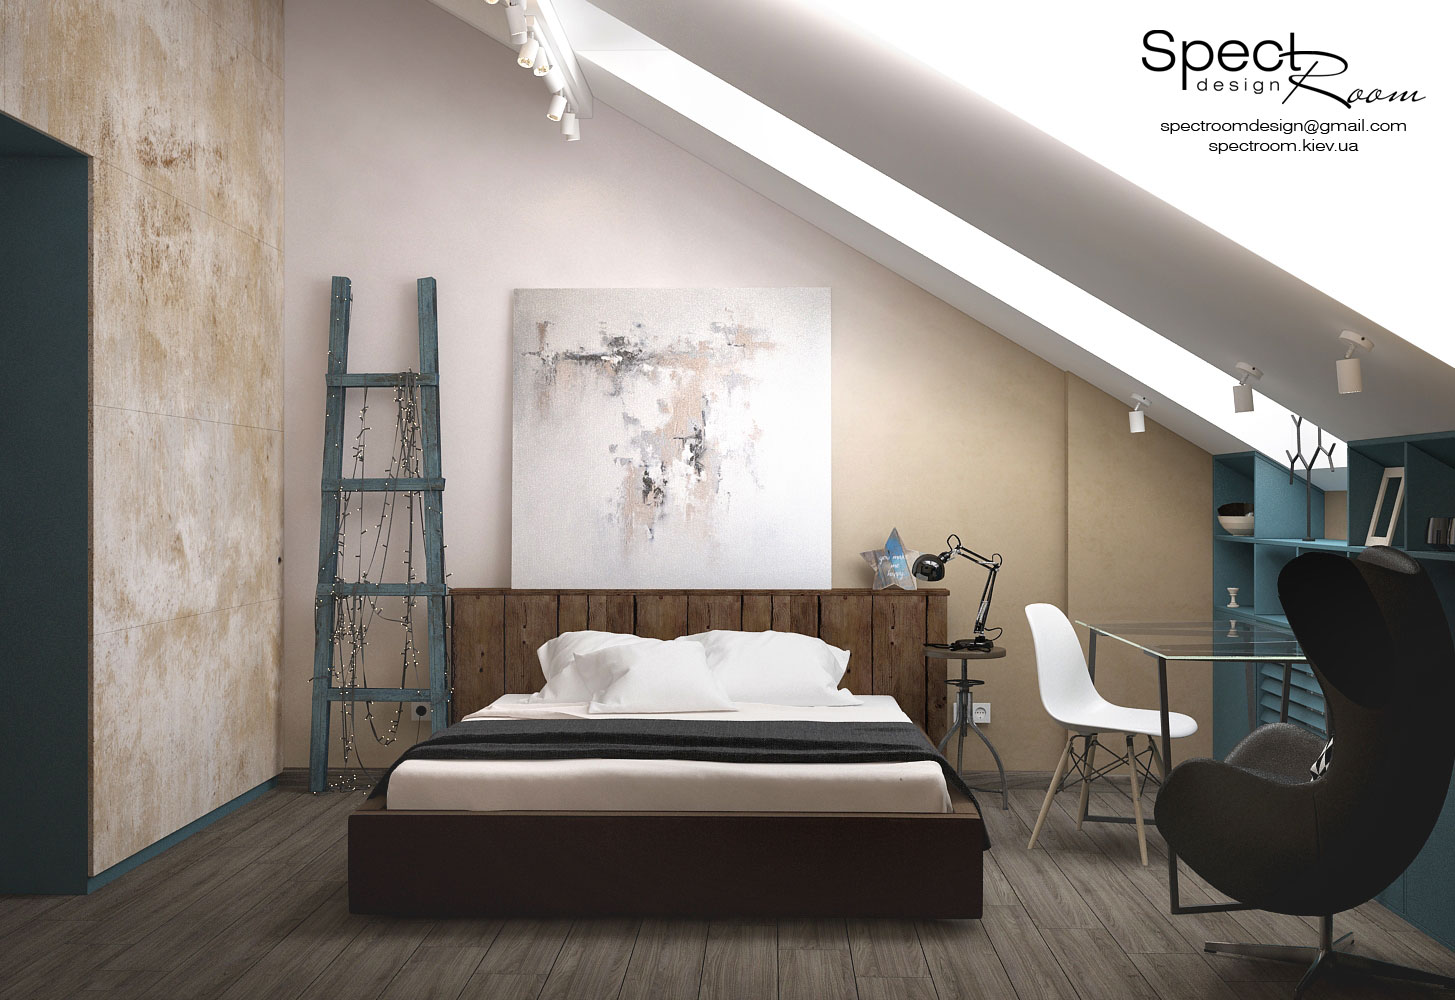 Spectroom for Kt interior designs